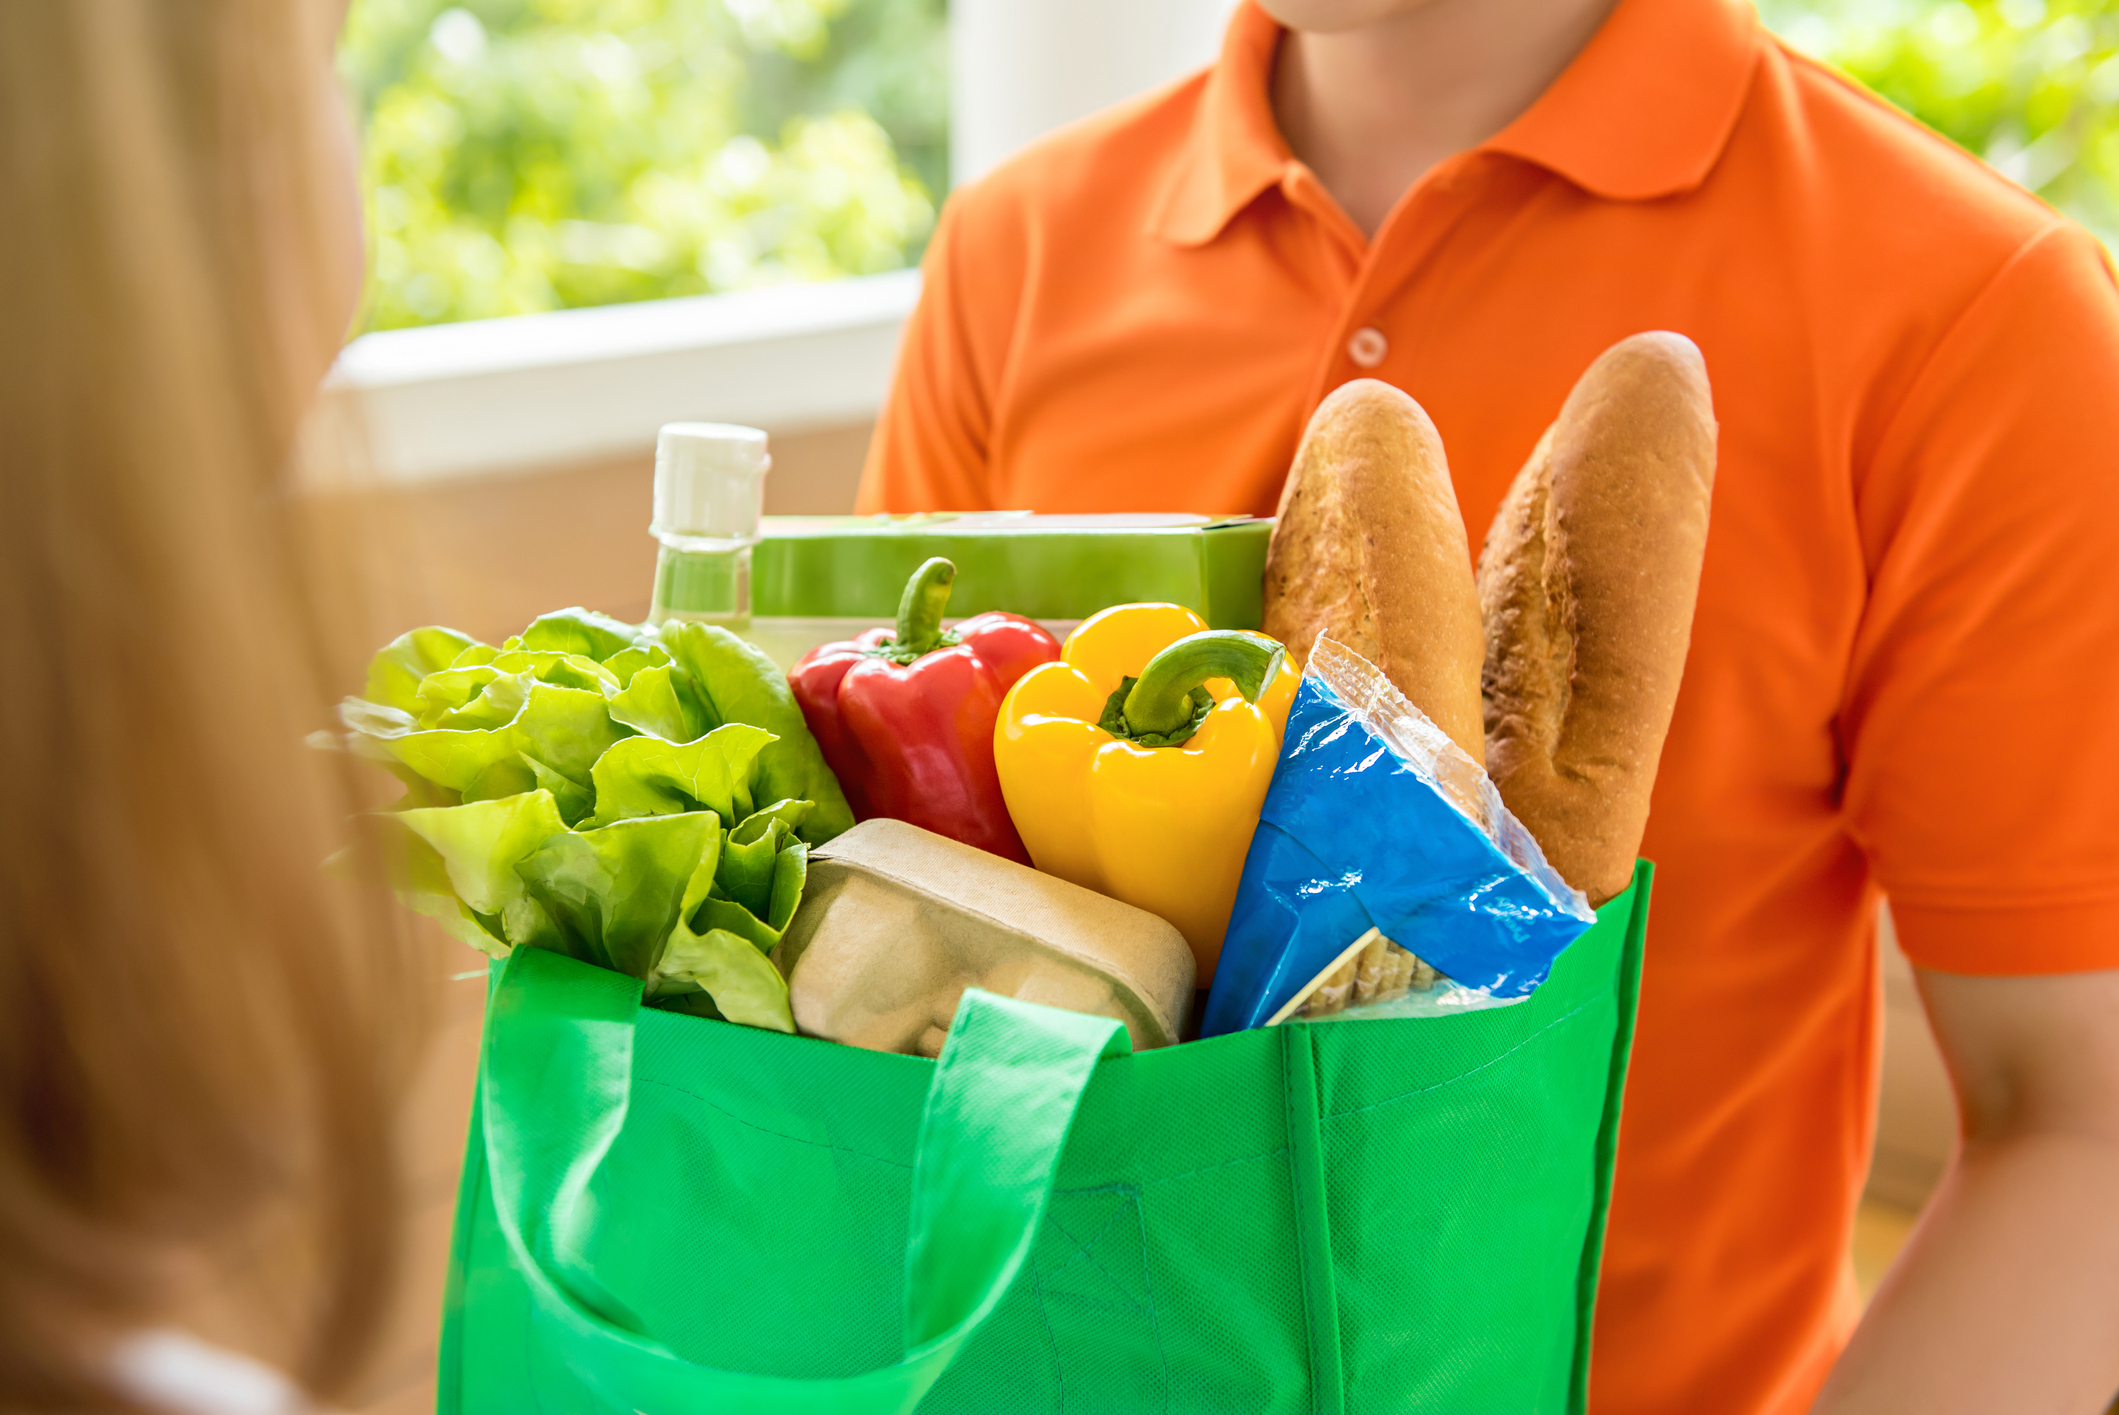 Grocery store delivey man wearing orange polo-shirt delivering food to a woman at home